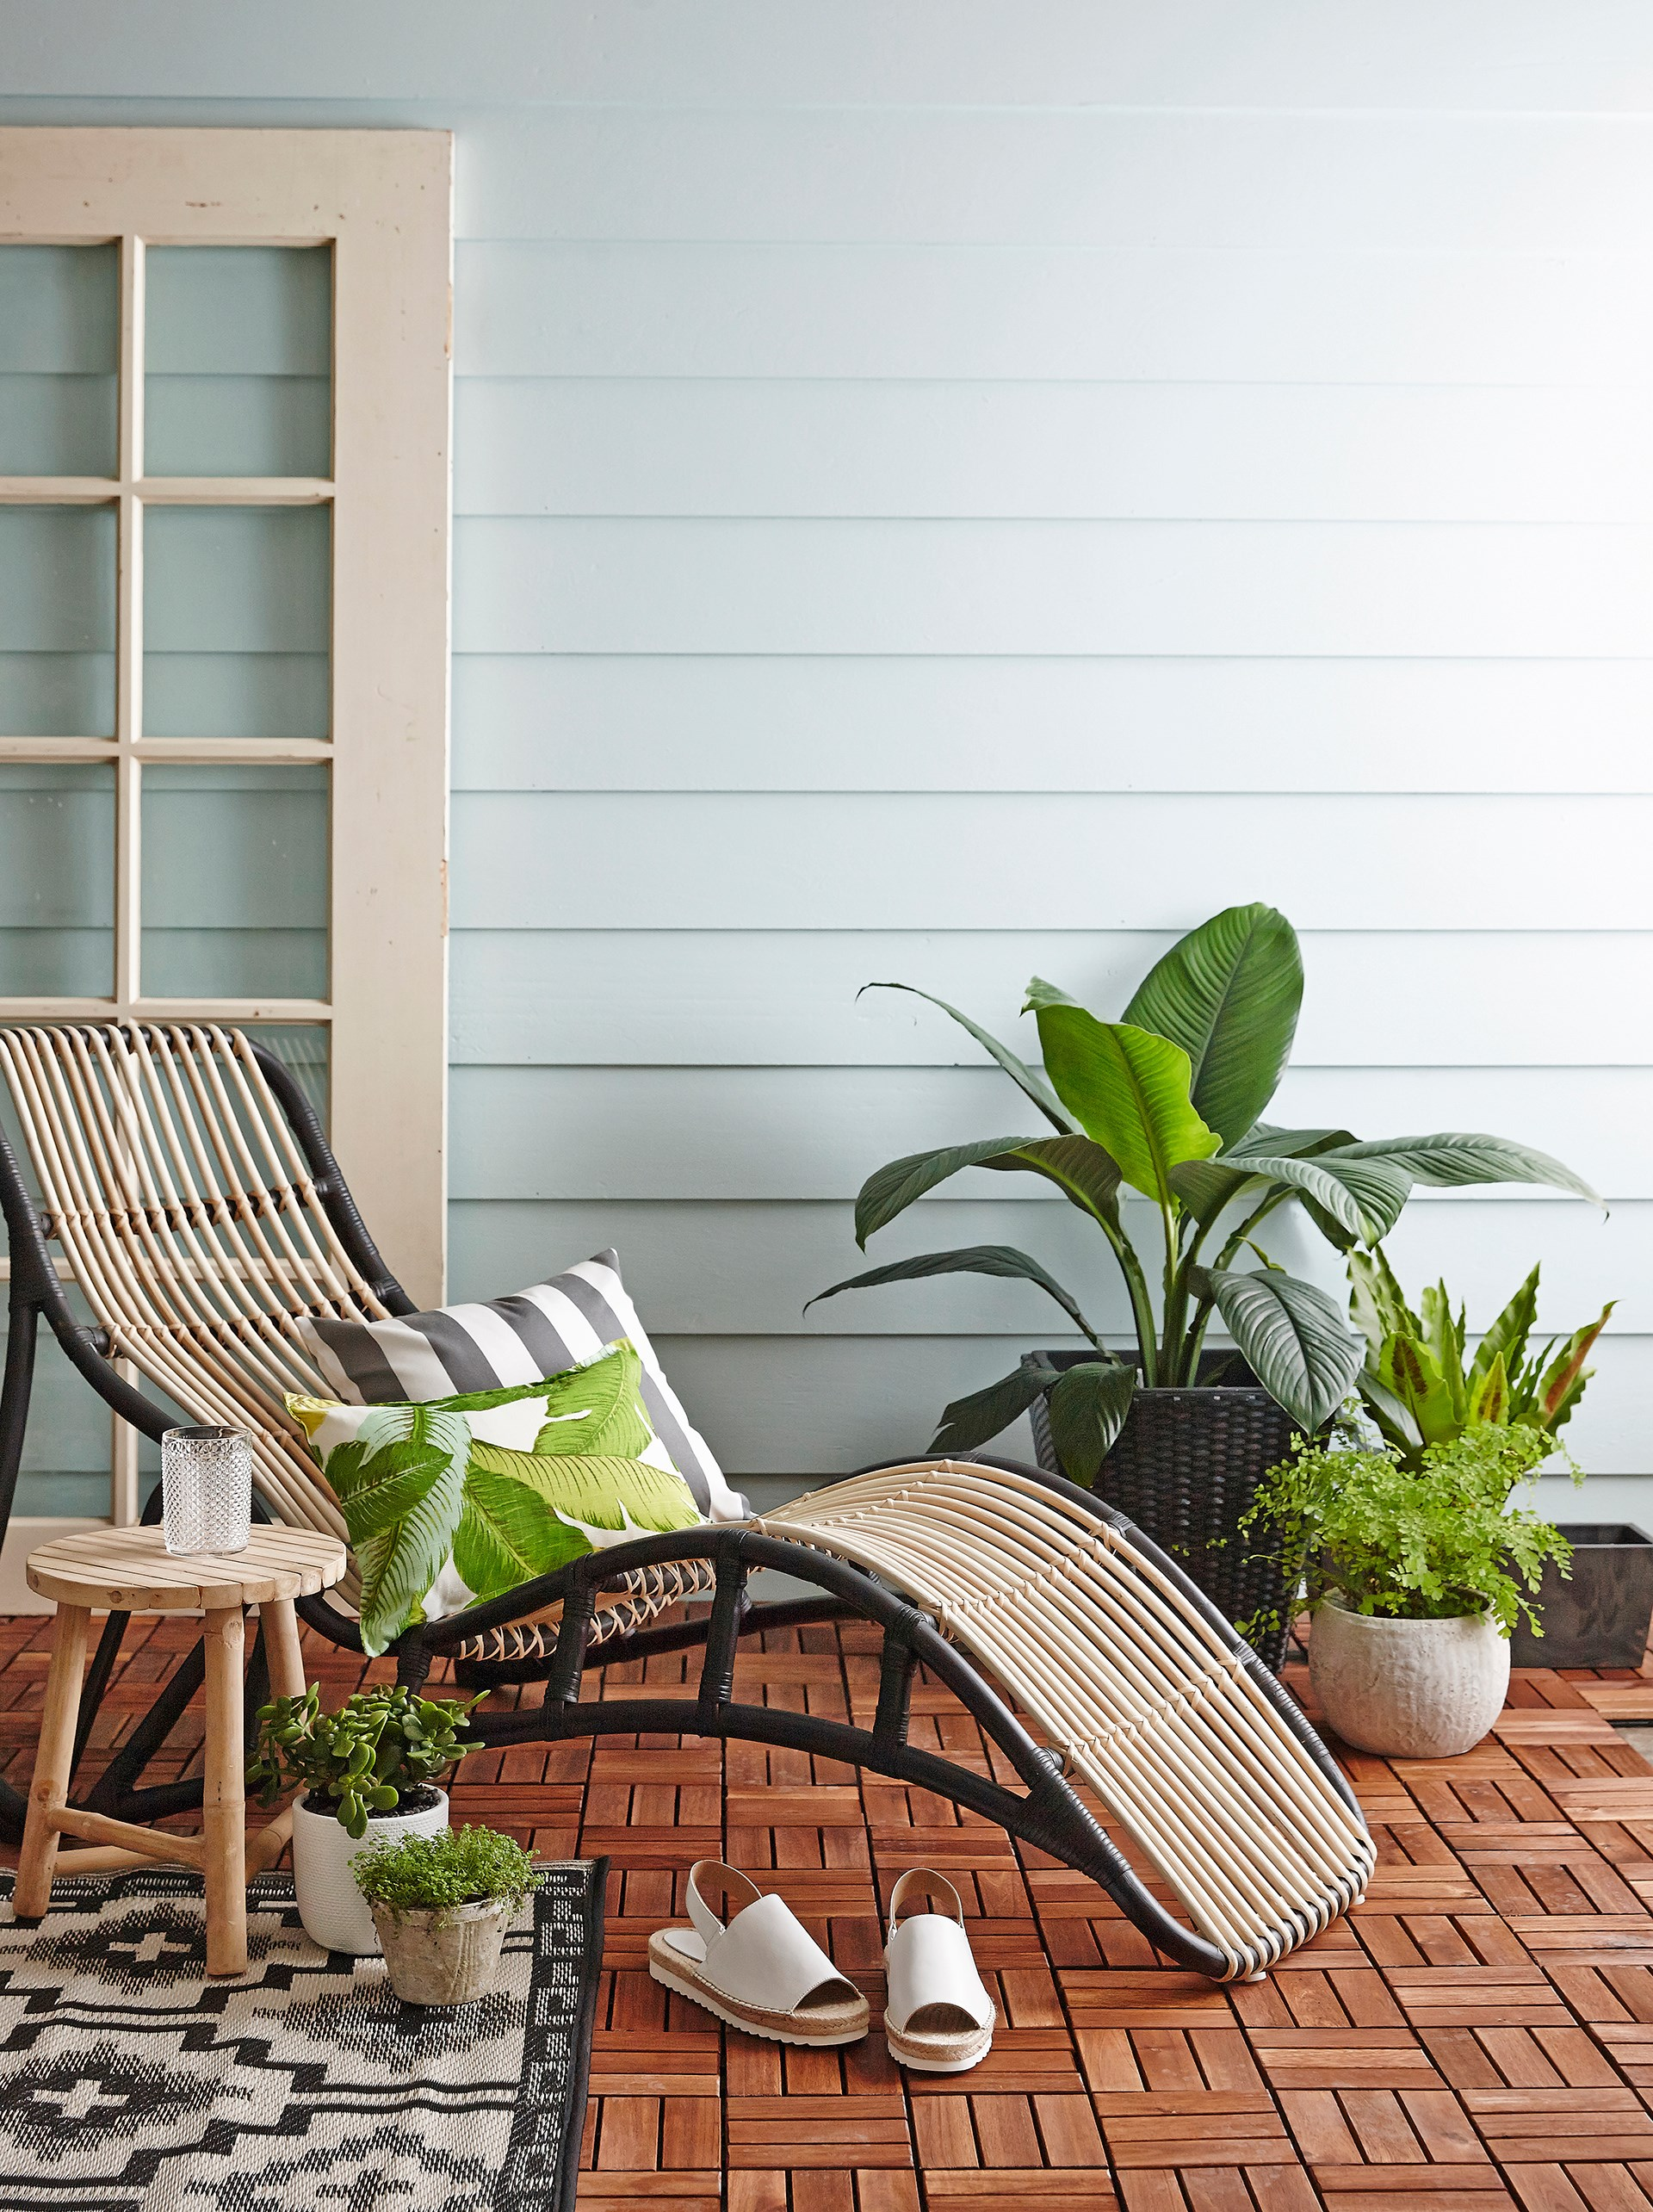 "A sun lounger creates a resort vibe without the hefty price tag. This Nipprig 2015 rattan lounger is from [Ikea](http://www.ikea.com/?utm_campaign=supplier/|target=""_blank""). See our pick of [garden and patio homewares](http://www.homestolove.com.au/gallery-spring-homewares-to-brighten-your-day-2285/?utm_campaign=supplier/